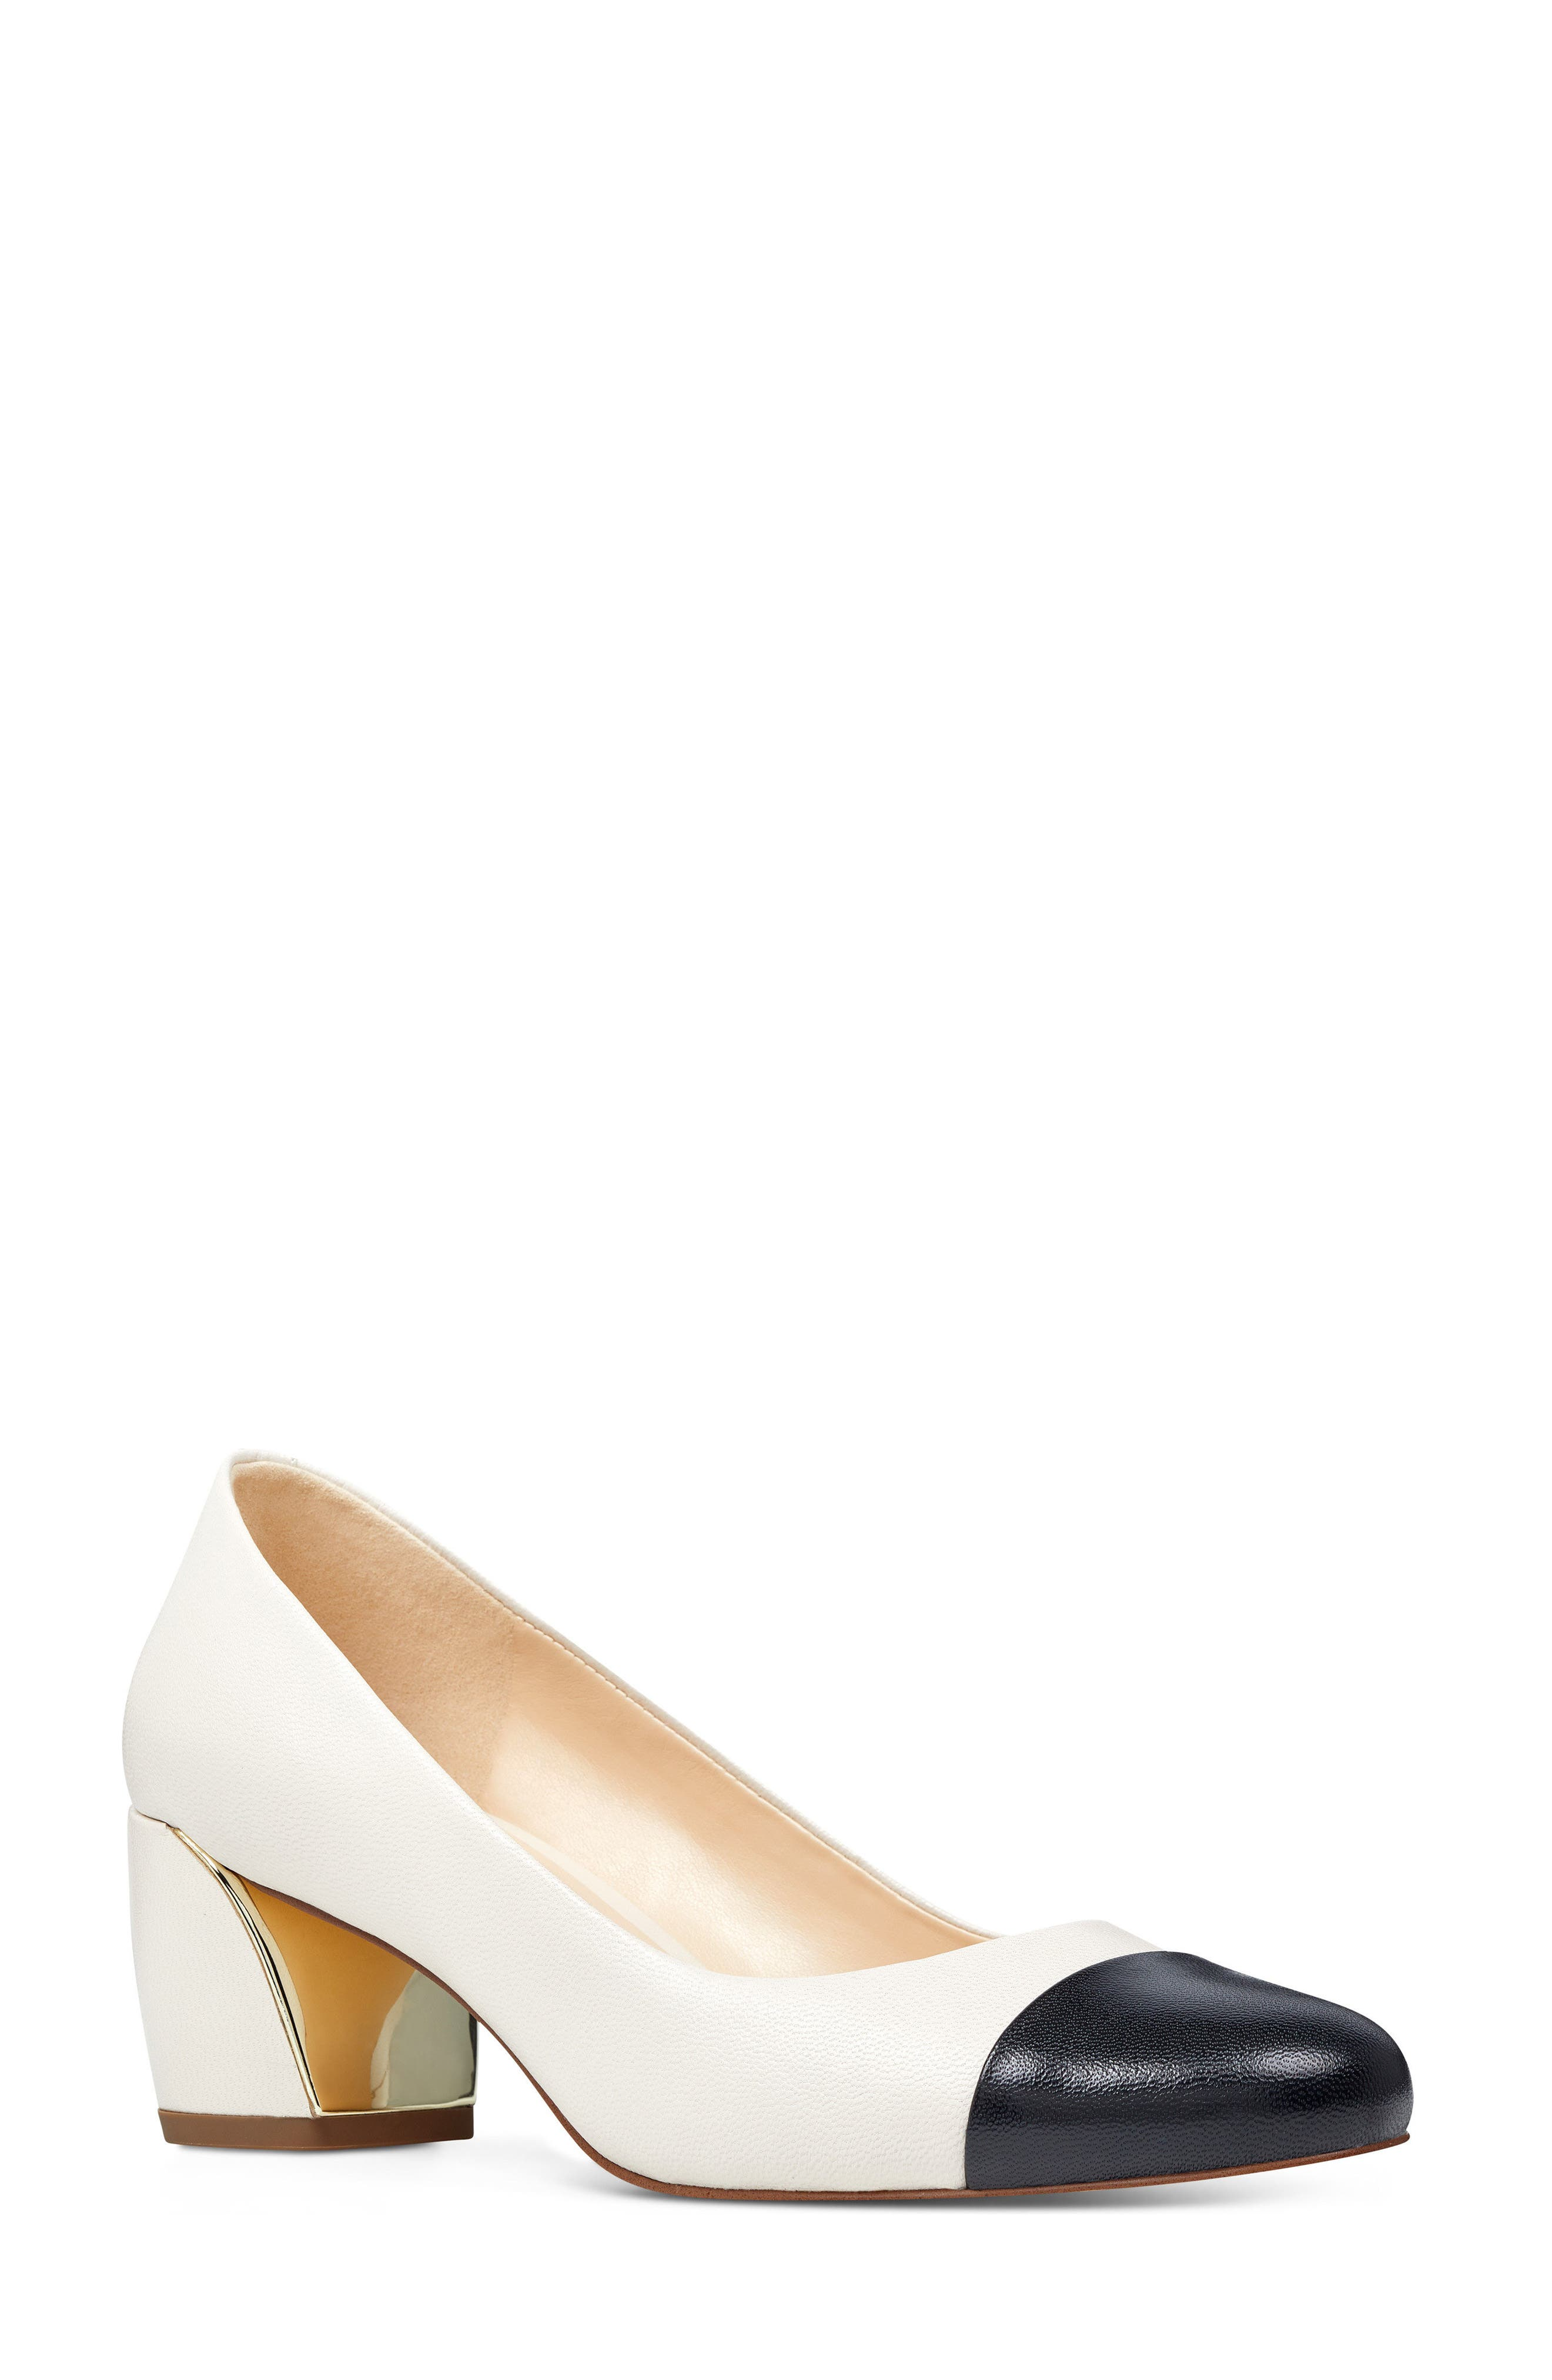 Jineya Cap Toe Pump,                         Main,                         color, Off White/ Black Leather